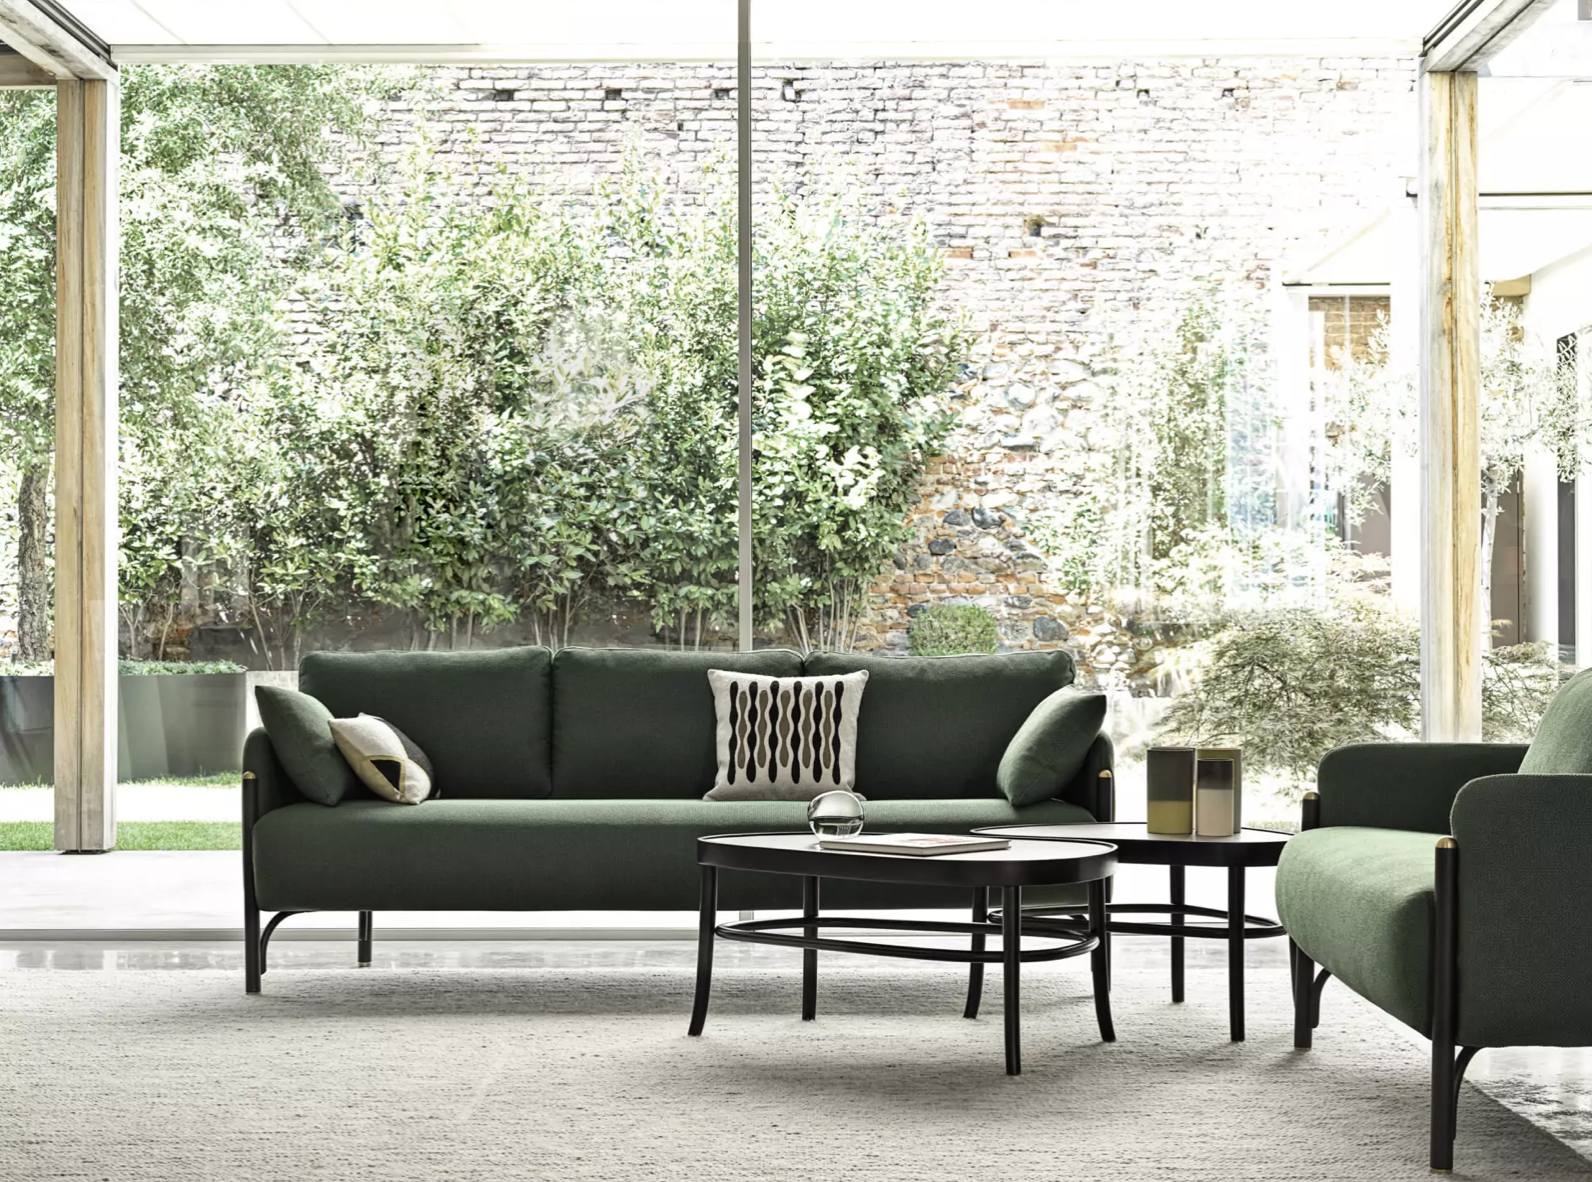 Peers Coffee Table - The Swedish duo Front designs the new PEERS coffee tables. High-end project that marks a new encounter with Gebrüder Thonet Vienna for which the two designers have signed some of the bestsellers of the contemporary collection such as the Hideout lounge chair, the N.0 chair and the Coat Rack Bench. The PEERS collection includes two tables, elements designed in pairs but also perfect used individually, ideal in the living area or in the bedroom as bedside tables. With a characteristic contoured shape, they have a colored laminate top with solid wood edge while the structure is enriched by the wooden ring, a structural element that incorporates the typical support circles of the classic bent wood chairs. The heritage of Gebrüder Thonet Vienna inspired Front also in the design of the legs which contributes to defining the lightness of PEERS without affecting its stability. | Matter of Stuff